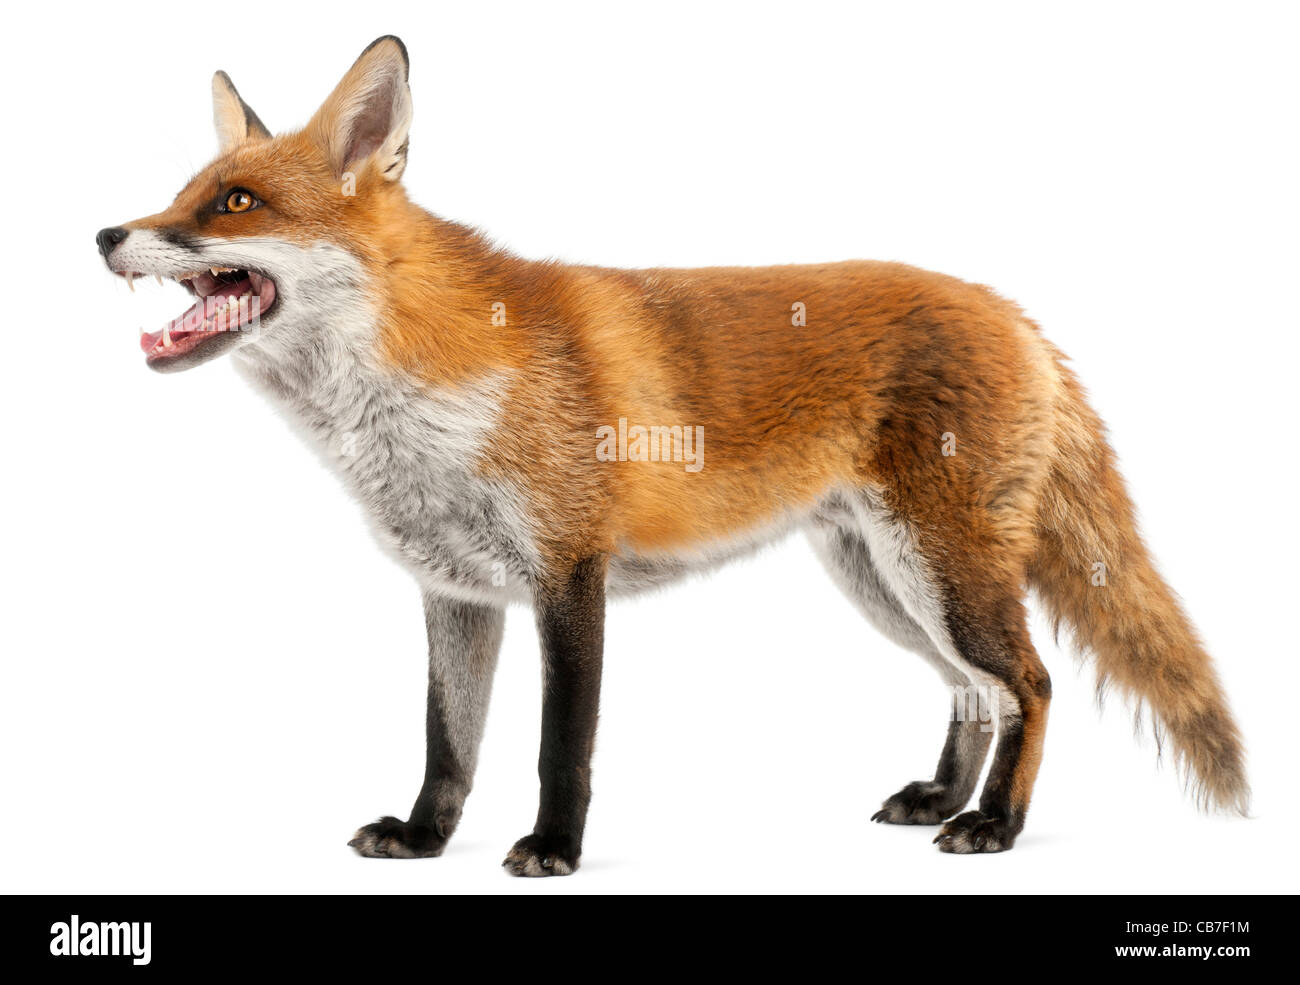 Red Fox, Vulpes vulpes, 4 years old, in front of white background - Stock Image